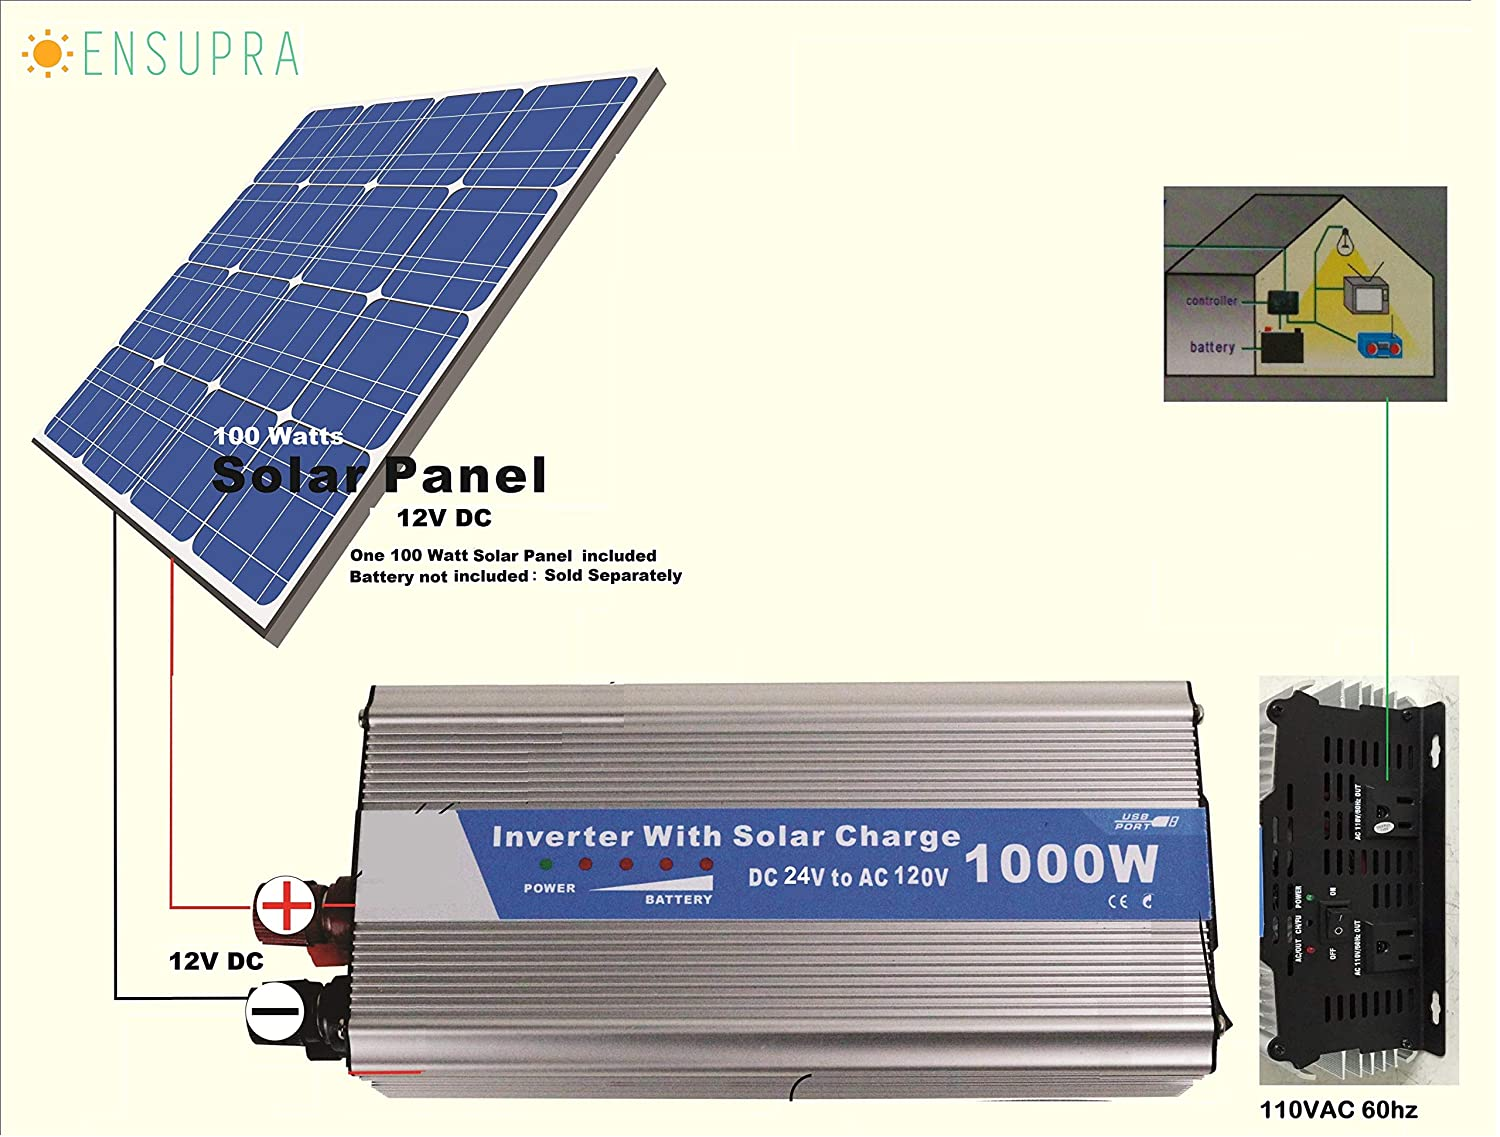 Ensupra 1000 Watt Solar Power 120v Ac Powered By 100 Wiring Panels To Grid Tie Inverter Panel Simply Add A 12v Batteryplug Play Get 30 Federal Tax